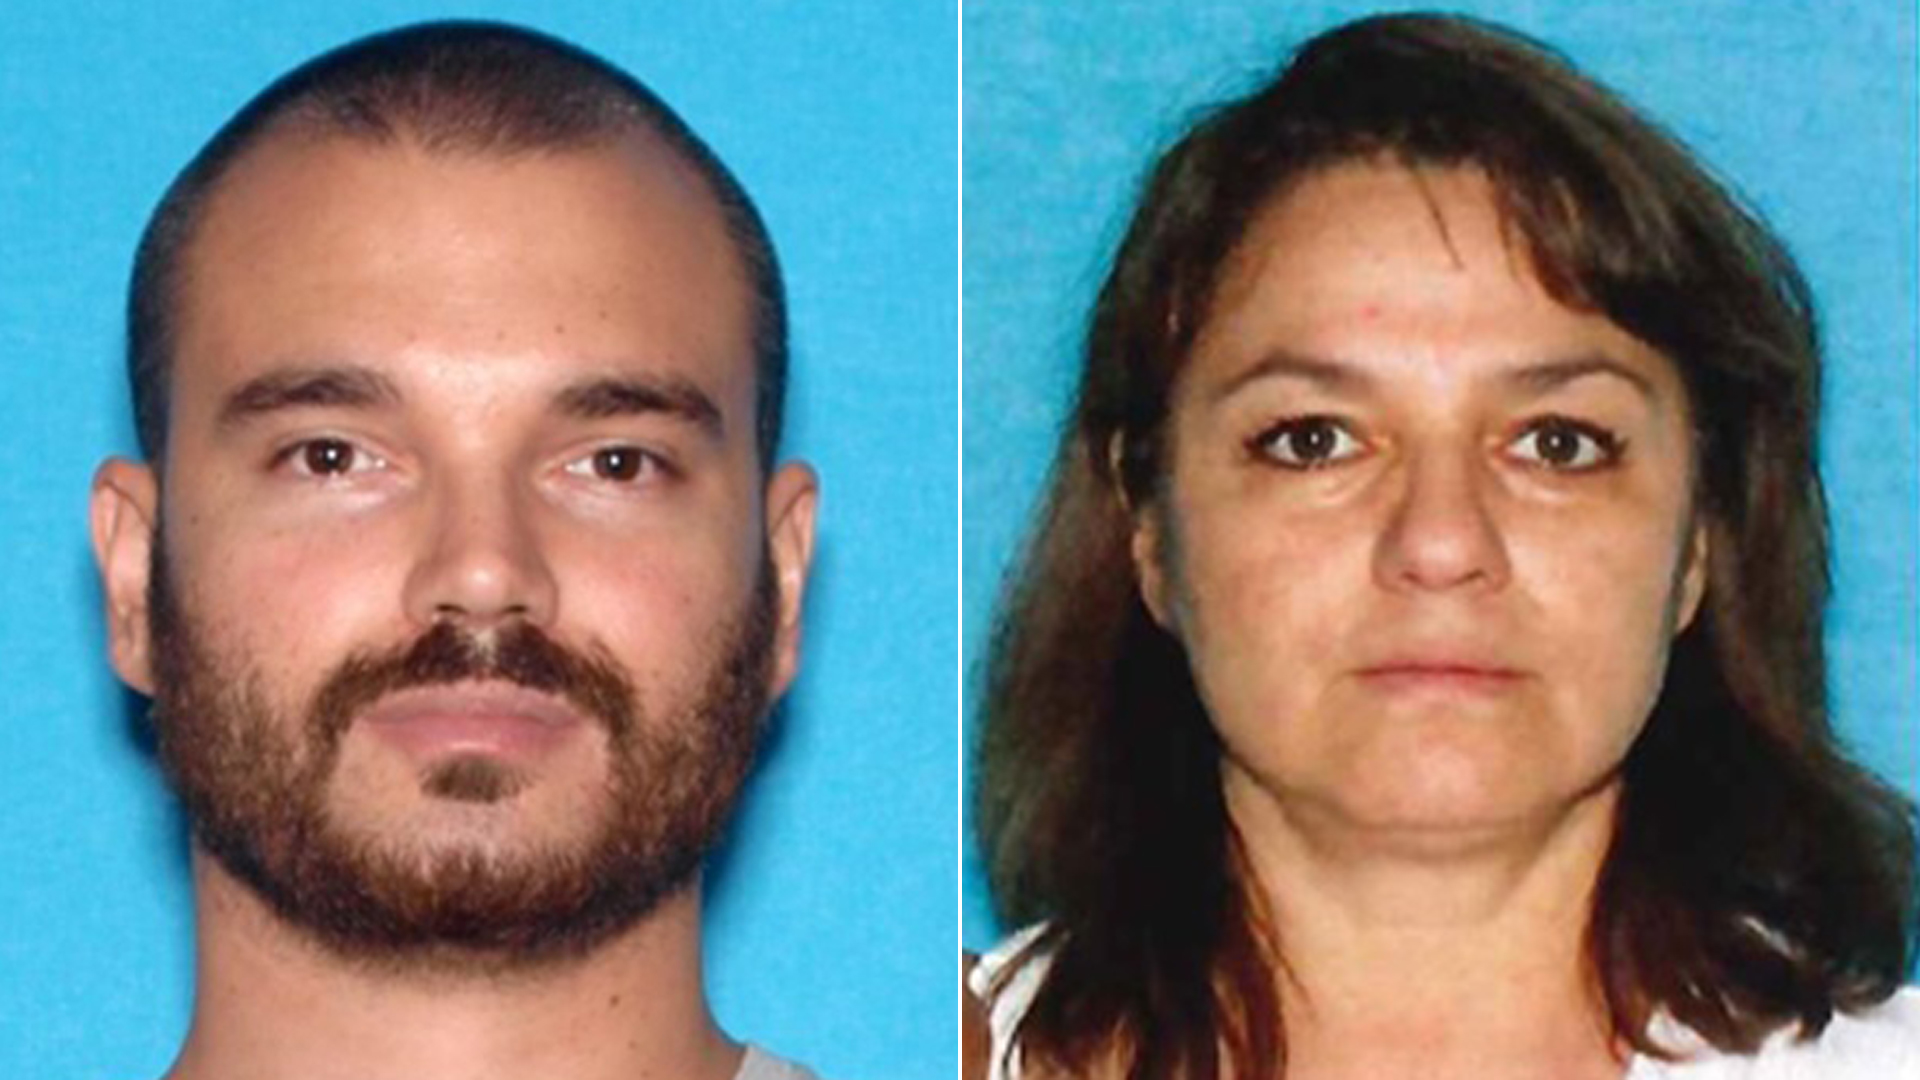 Michael John Cullen, left, and his mother Esperanza Guadalupe Cullen are shown in photos released Nov. 8, 2019, by Simi Valley police.